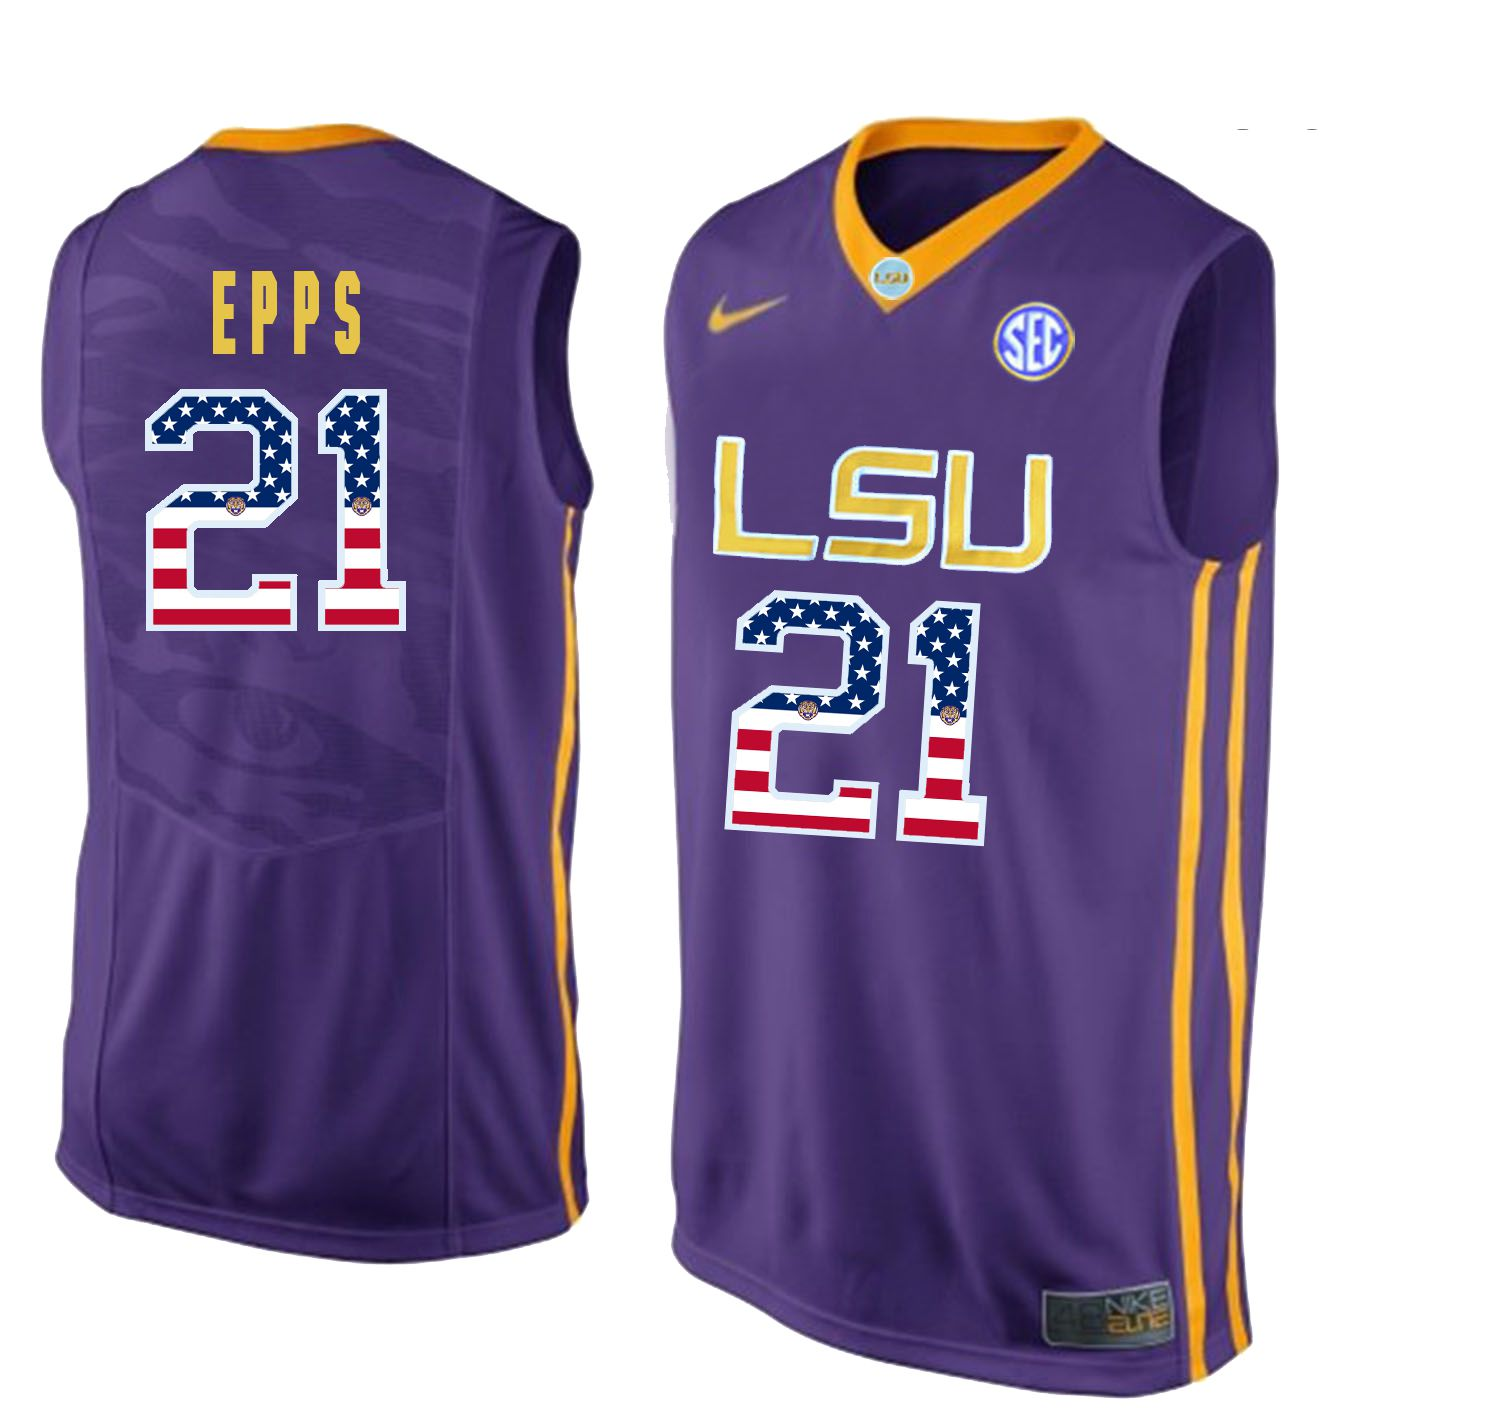 Men LSU Tigers 21 Epps Purple Flag Customized NCAA Jerseys